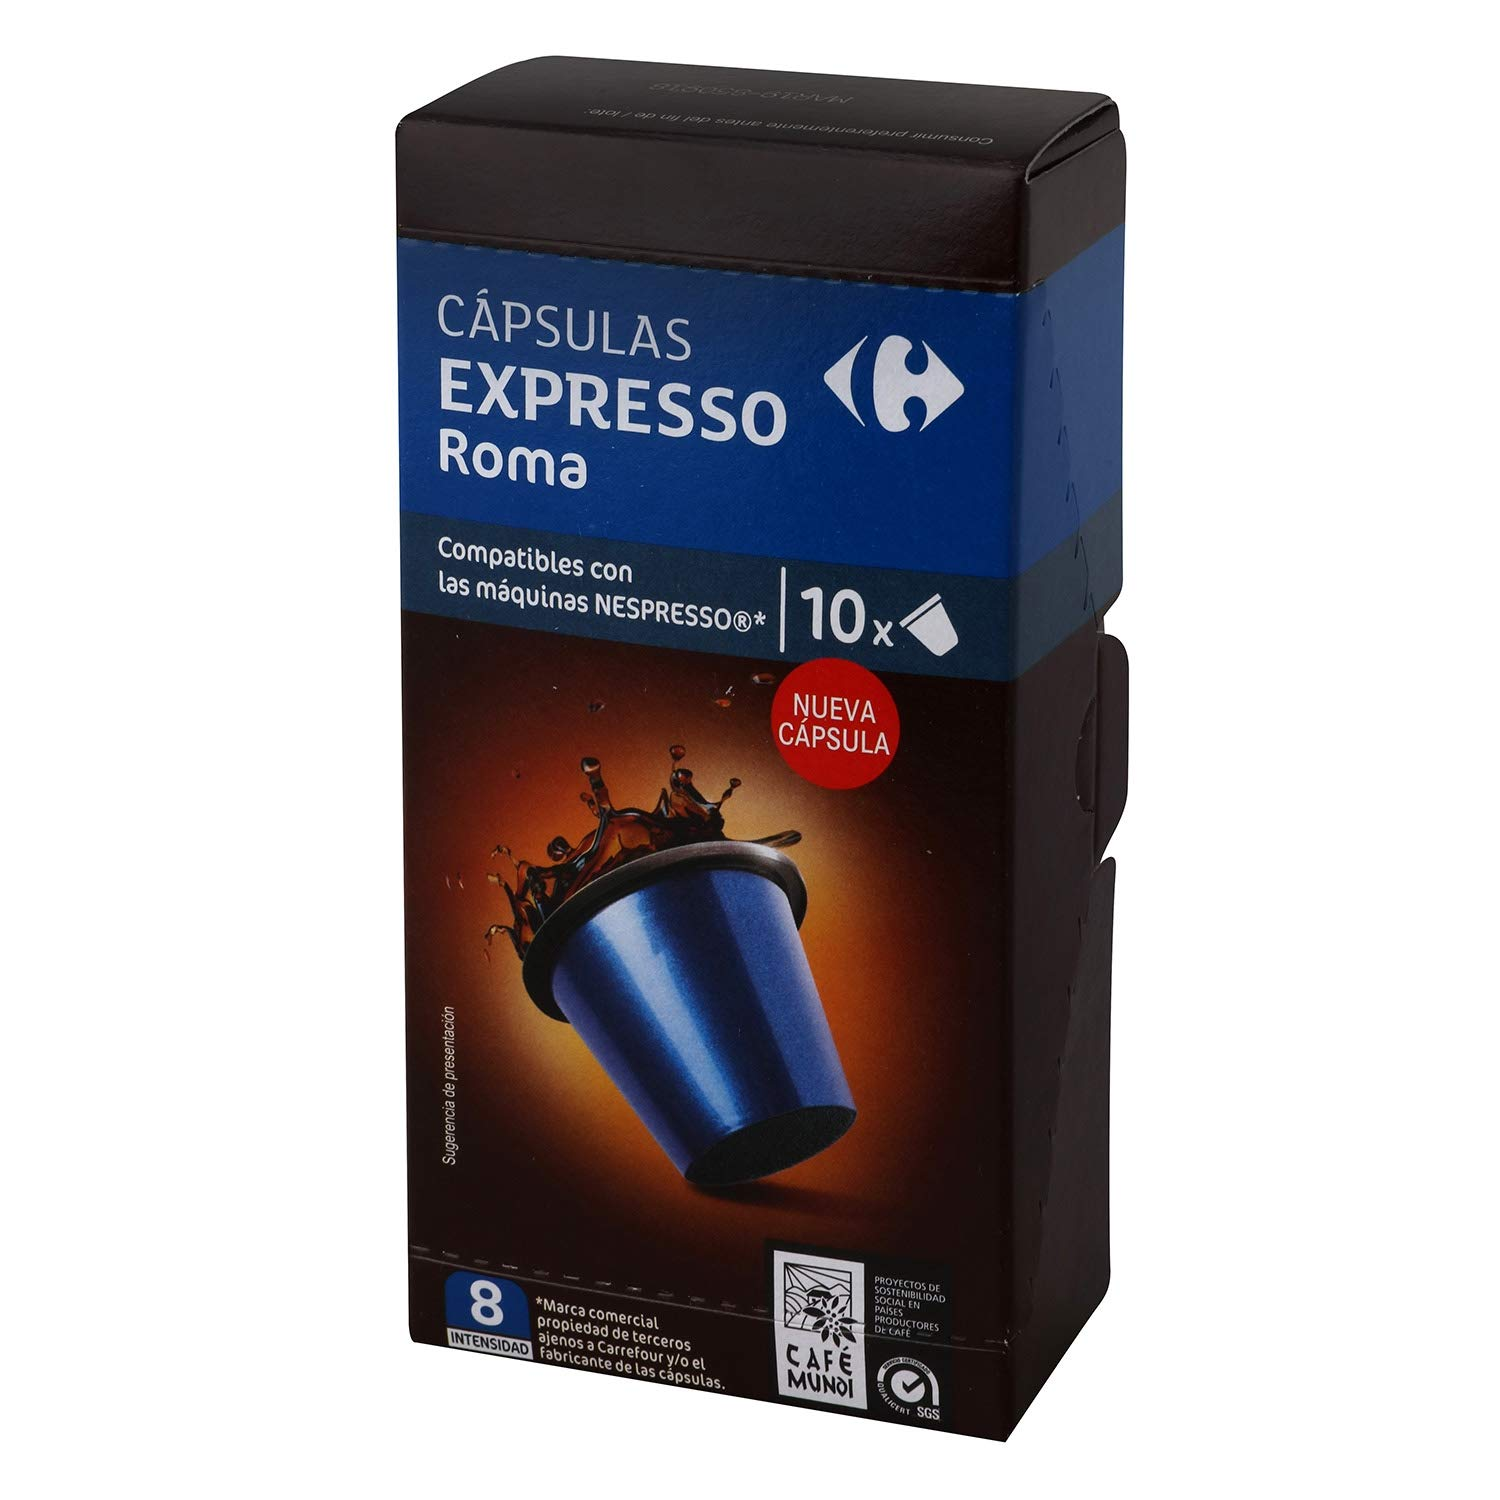 4 PACK Carrefour Roma Coffee 10 Capsules per Package (40 total x 5,2g) 52gr. - Compatible with Nespresso Machine - Made In Spain - Delicious & Healthy ...